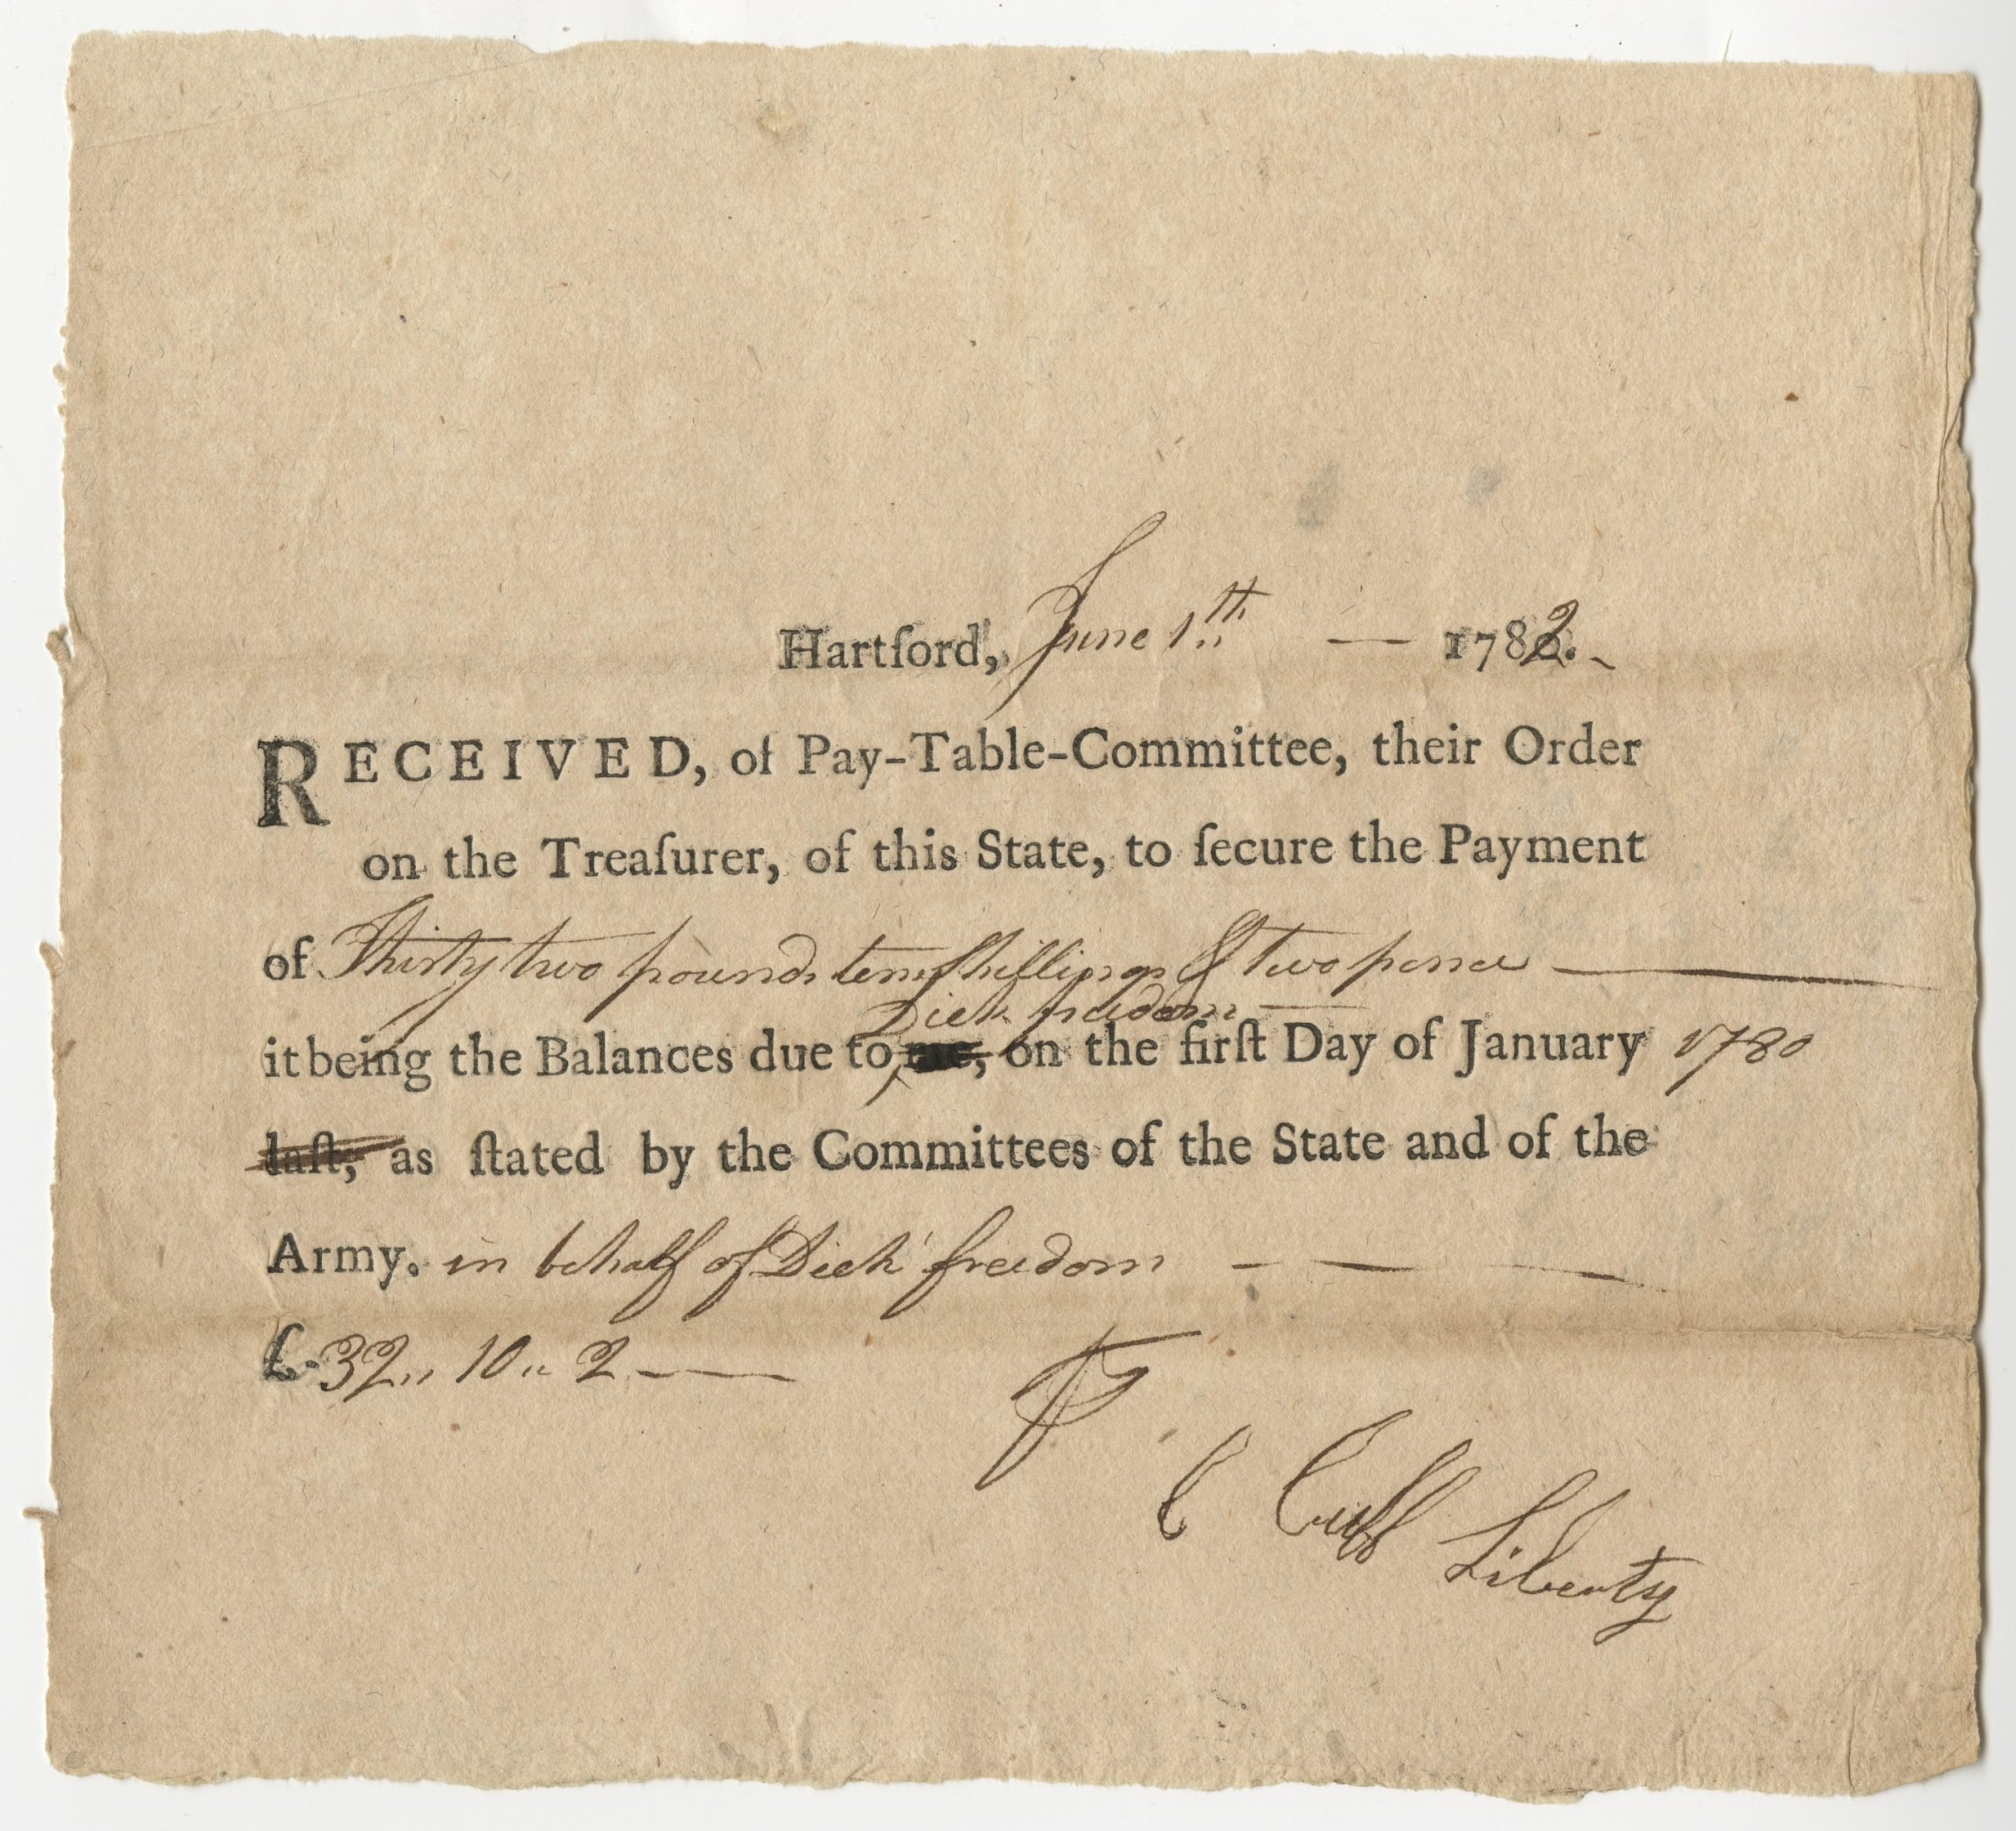 Connecticut Pay-Table Committee receipt, Cuff Liberty and Dick Freedom, Hartford, June 7, 1782